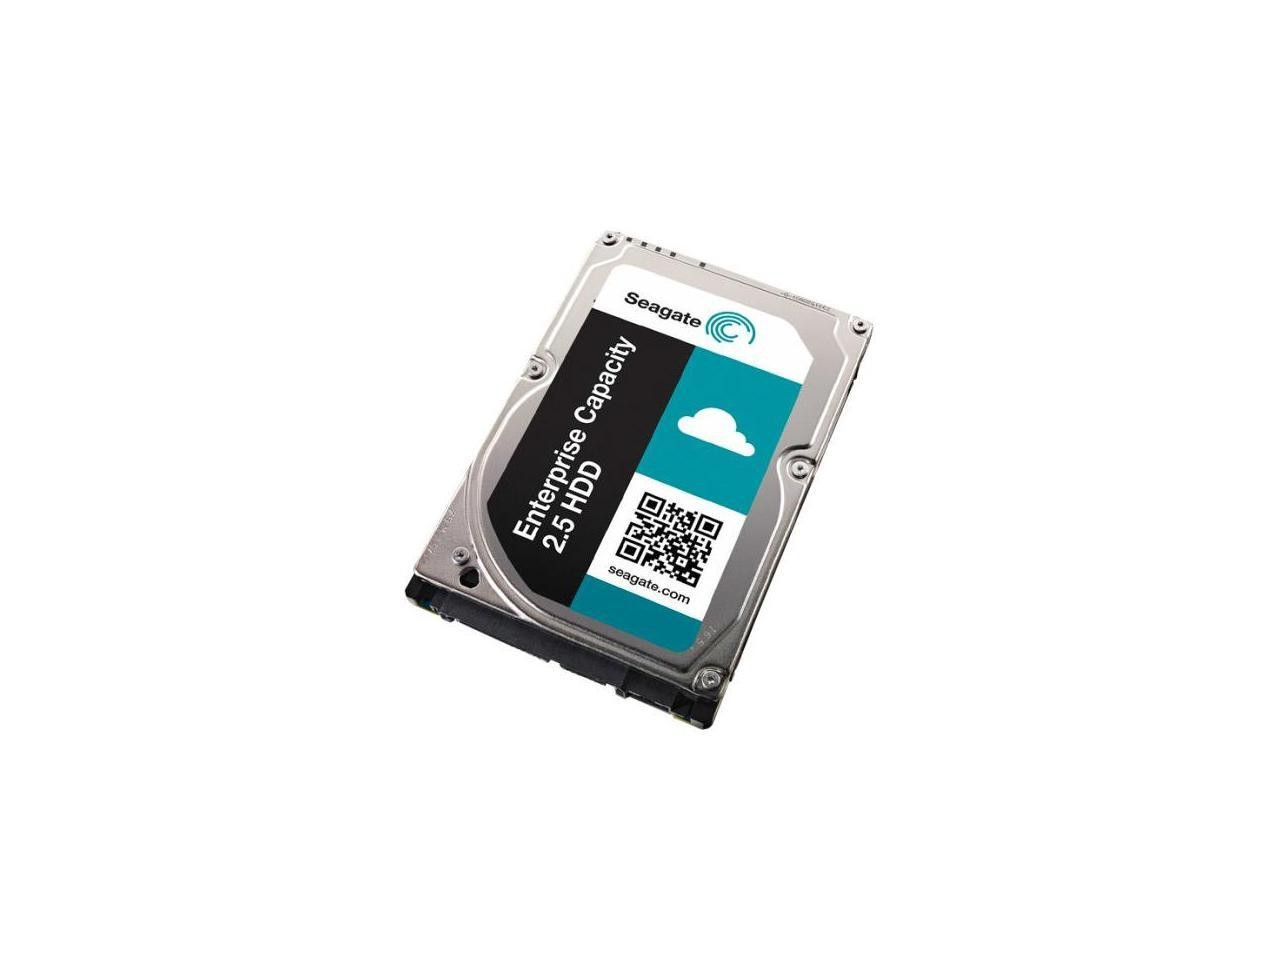 1TB Seagate ST1000NX0323 7200RPM SAS 12GB/s 2.5 Internal HDD